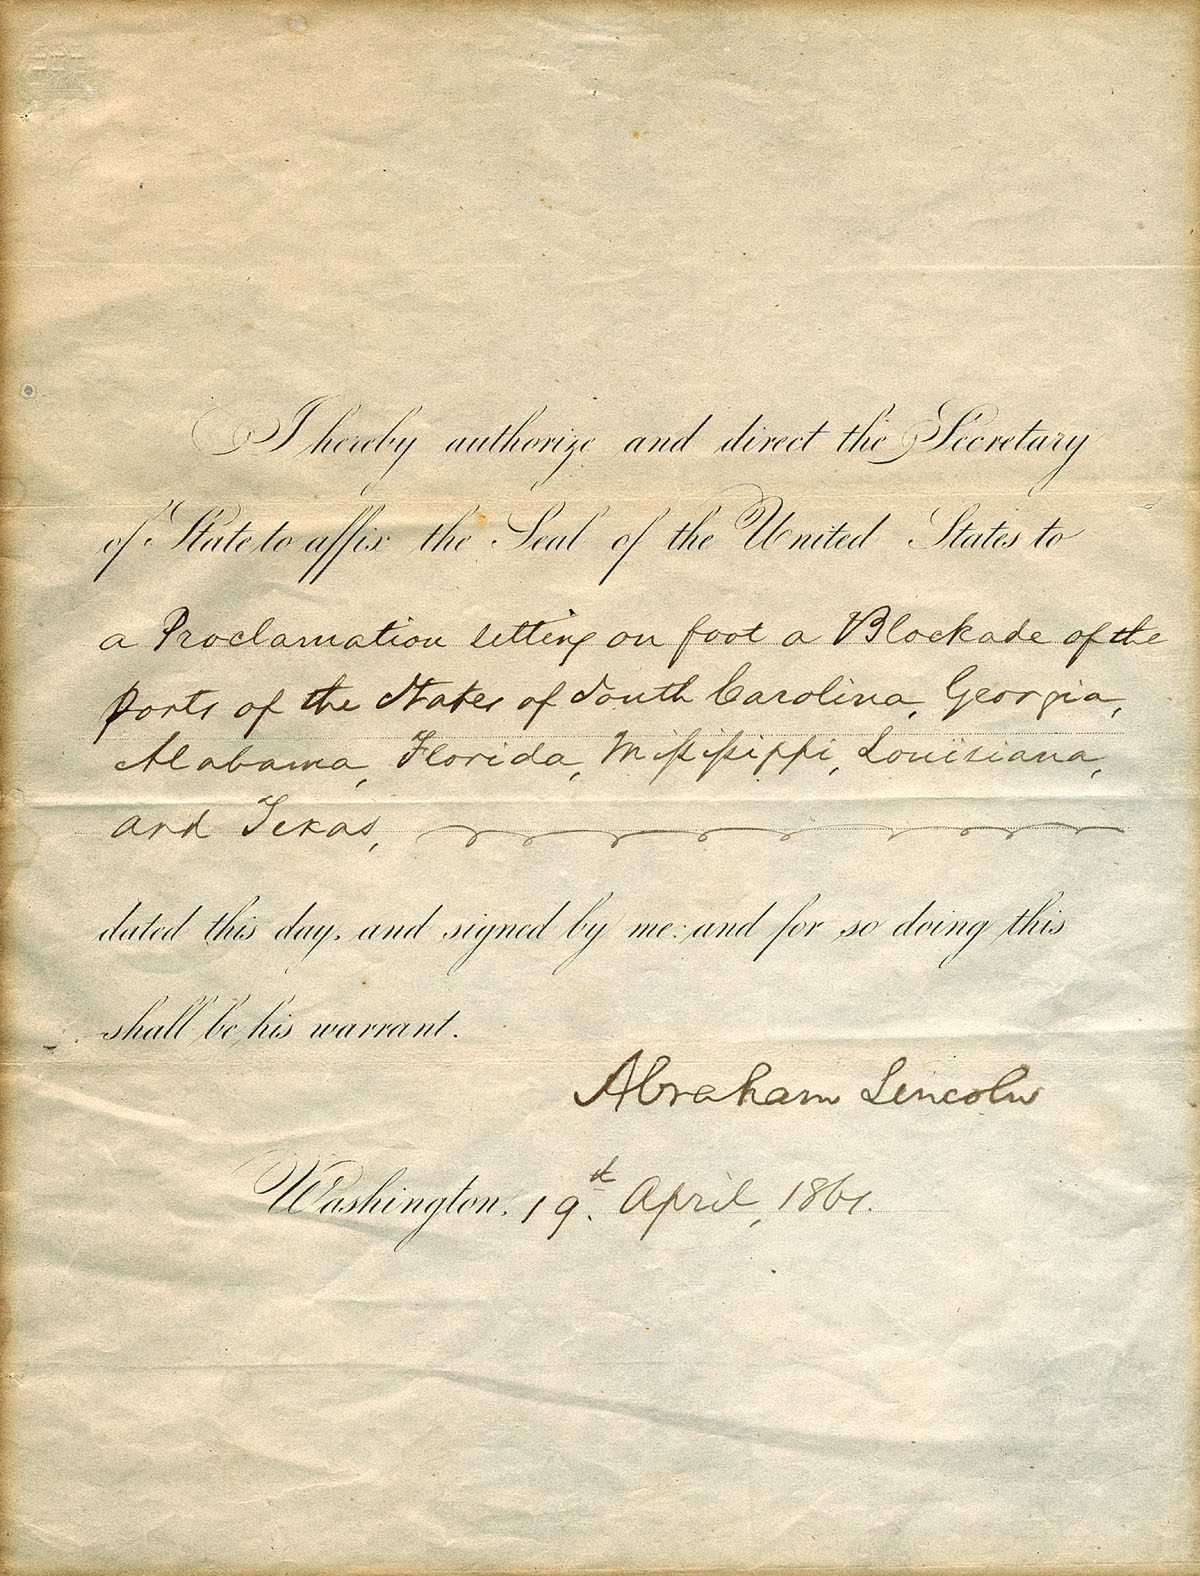 Lincoln's order to begin the blockade of Confederate ports. At the date of issuance, not all states had seceded yet--their names were added later.